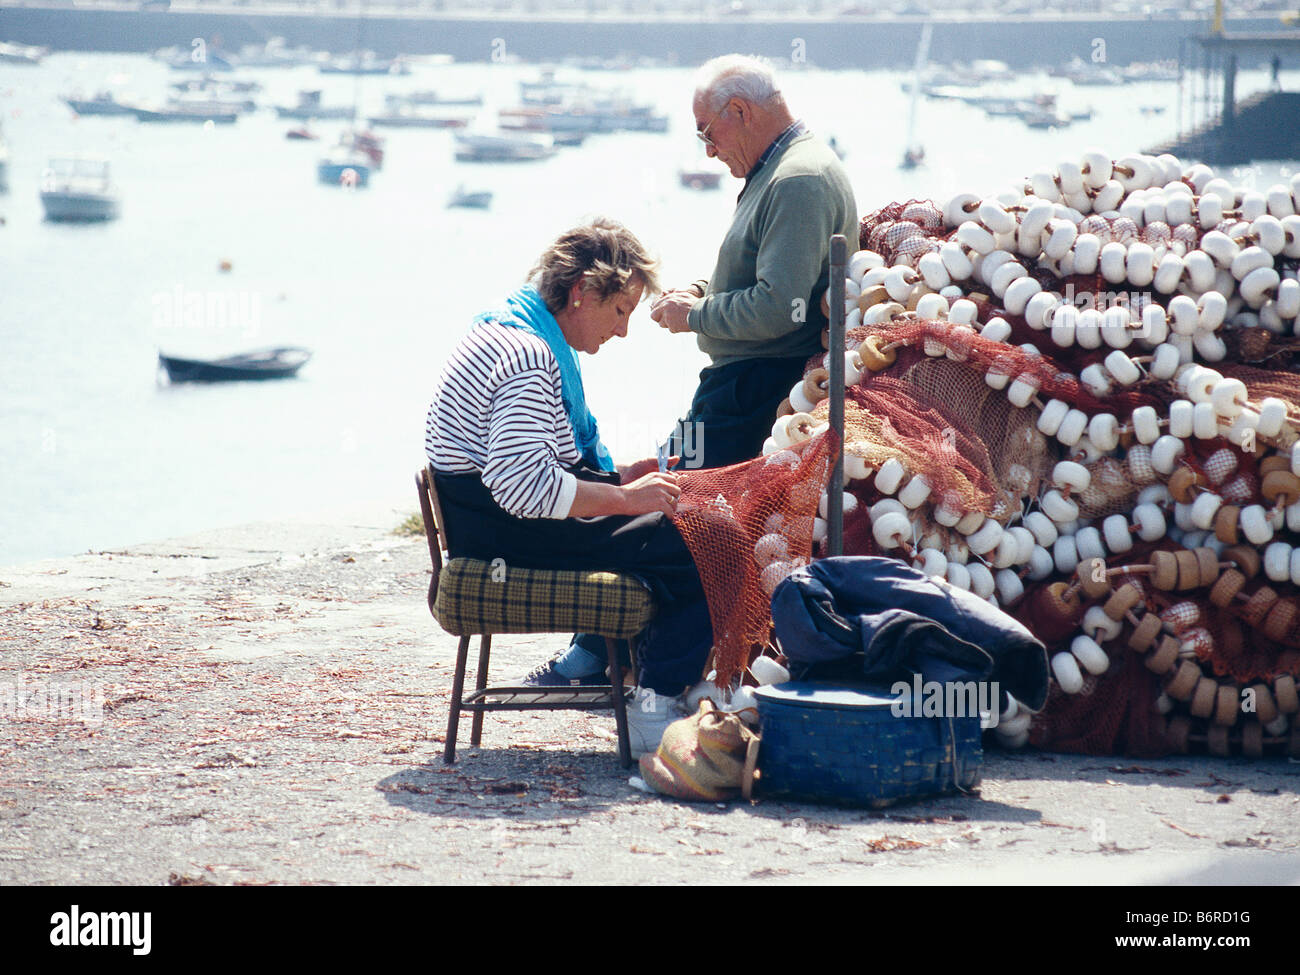 Fisherwoman mending nets. Castro Urdiales. Cantabria province. Spain. - Stock Image